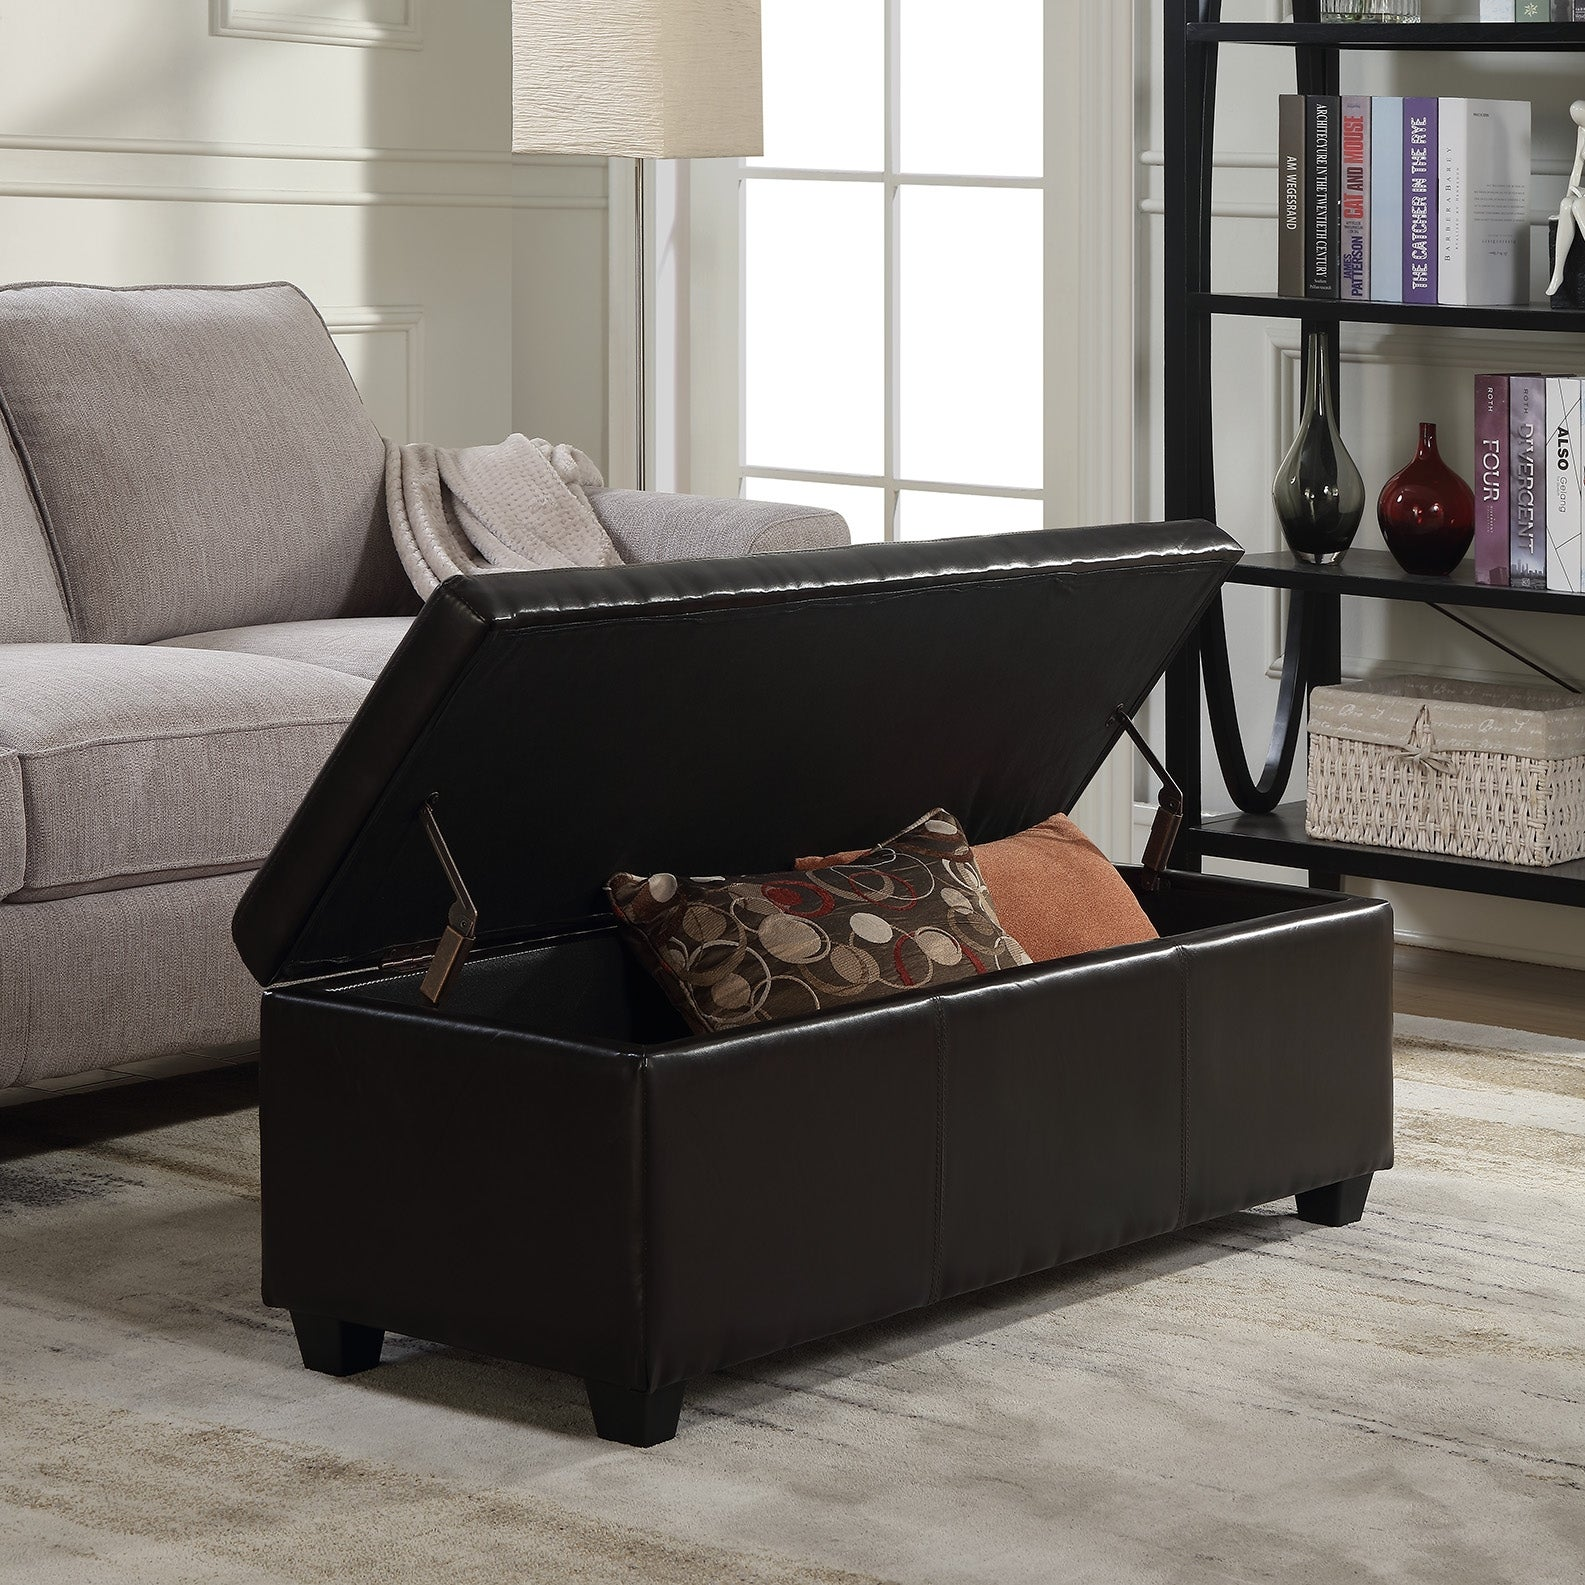 Belleze Modern Elegant Ottoman Storage Bench Living Bedroom Room Home